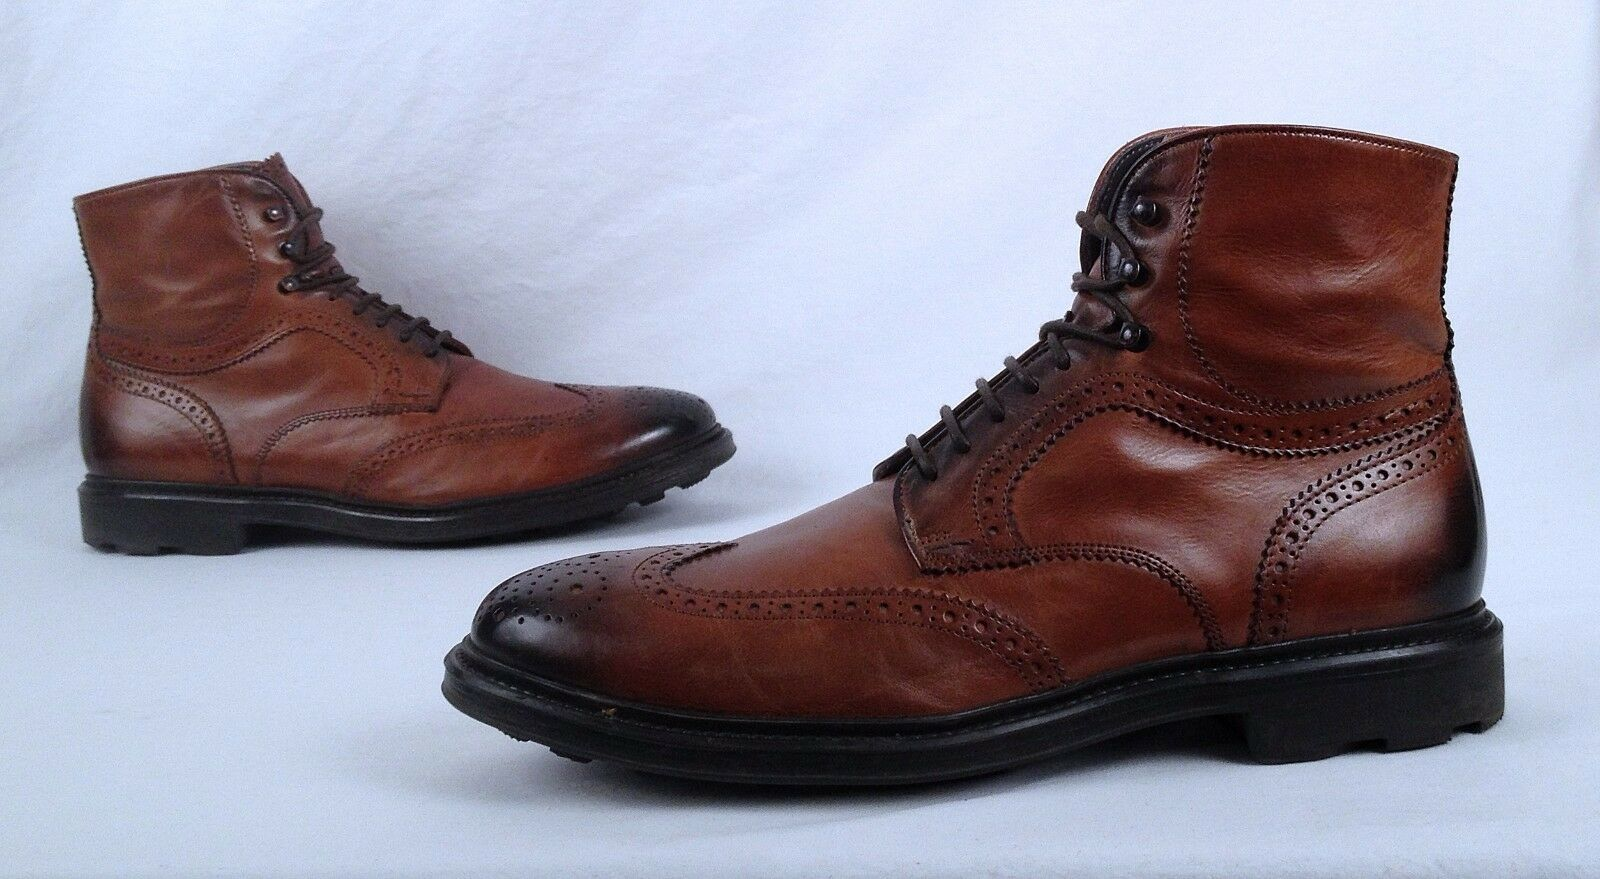 To Boot New York 'Hobson' Wingtip Boot- Cognac- Size 9.5 M-  450  (B30)